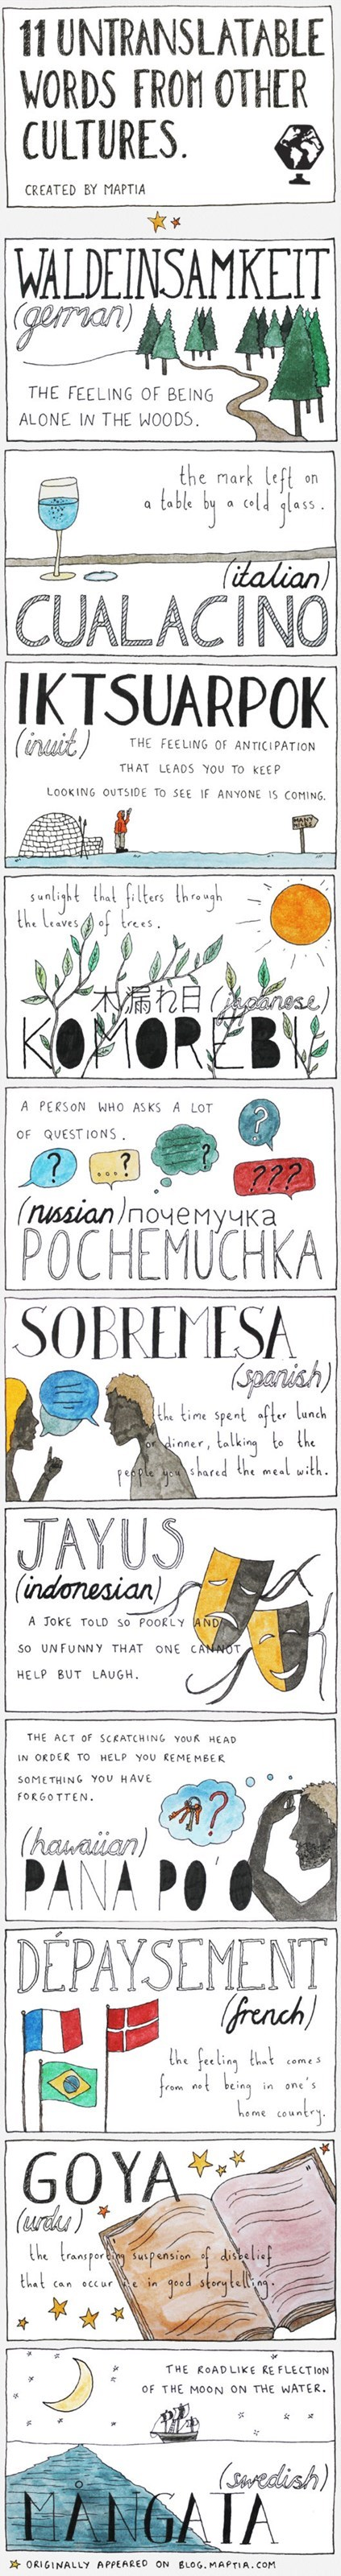 untranslatable,words,language,funny